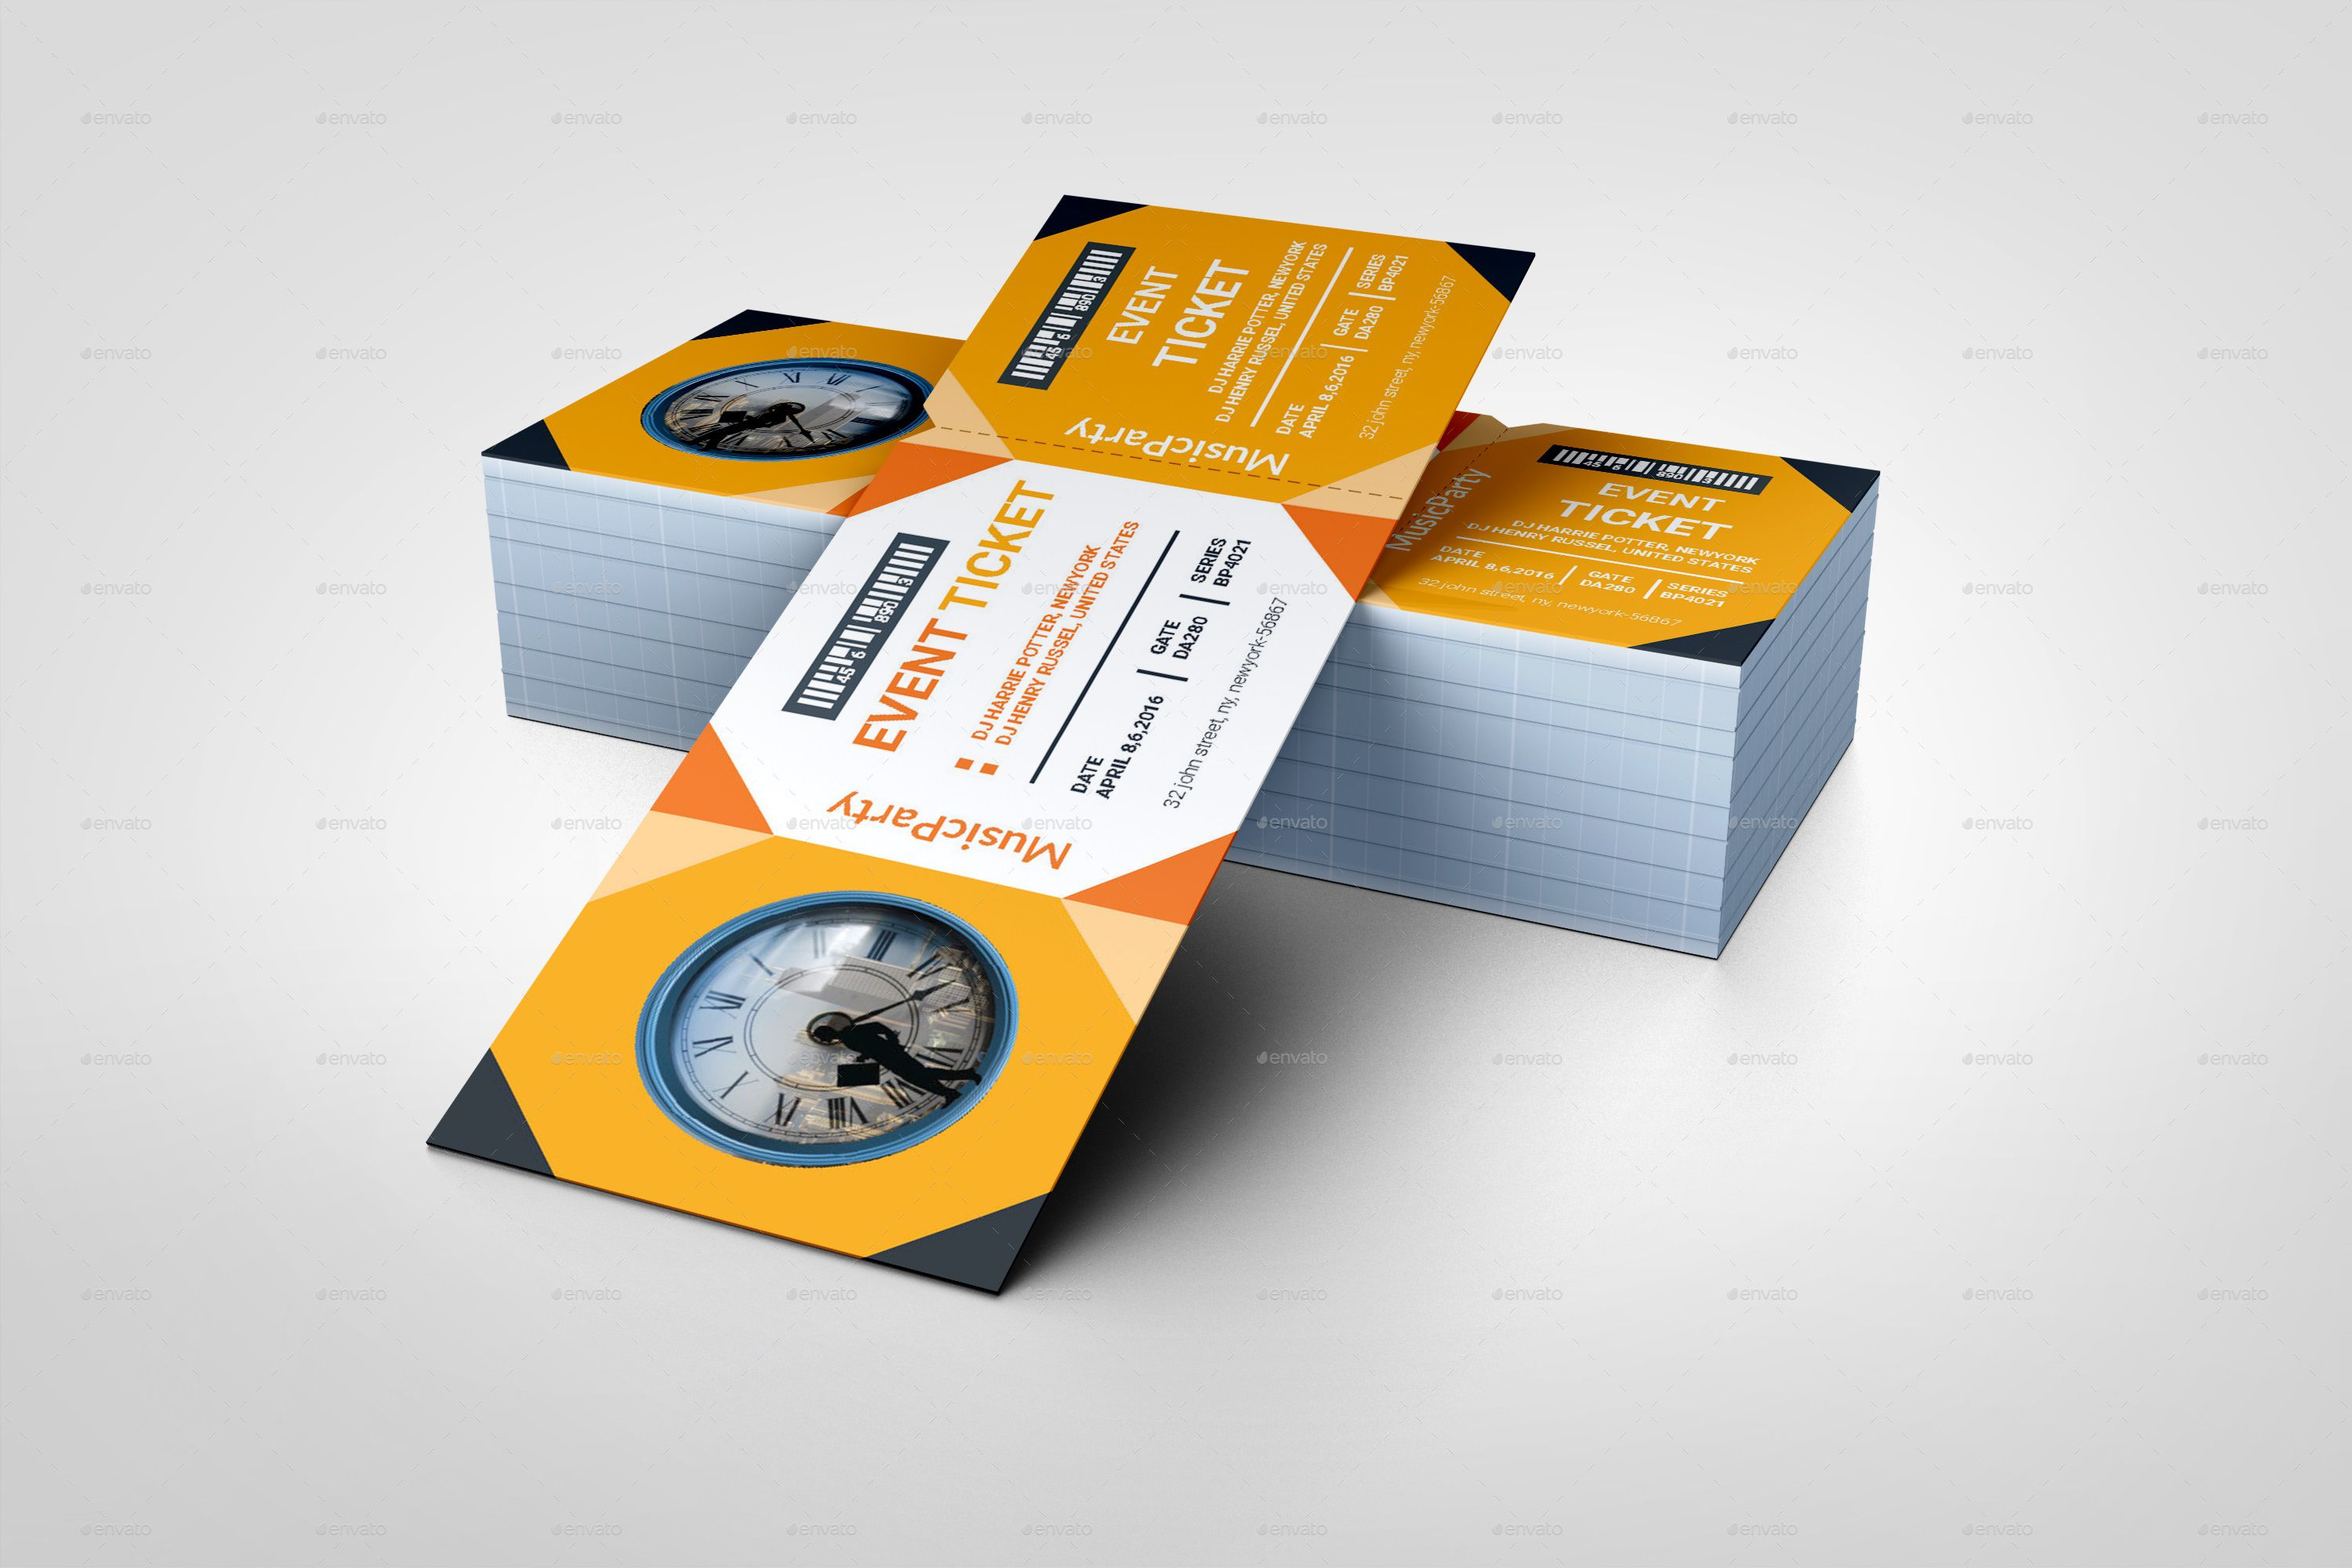 006 Breathtaking Event Ticket Template Photoshop Highest Quality  Design Psd Free DownloadFull